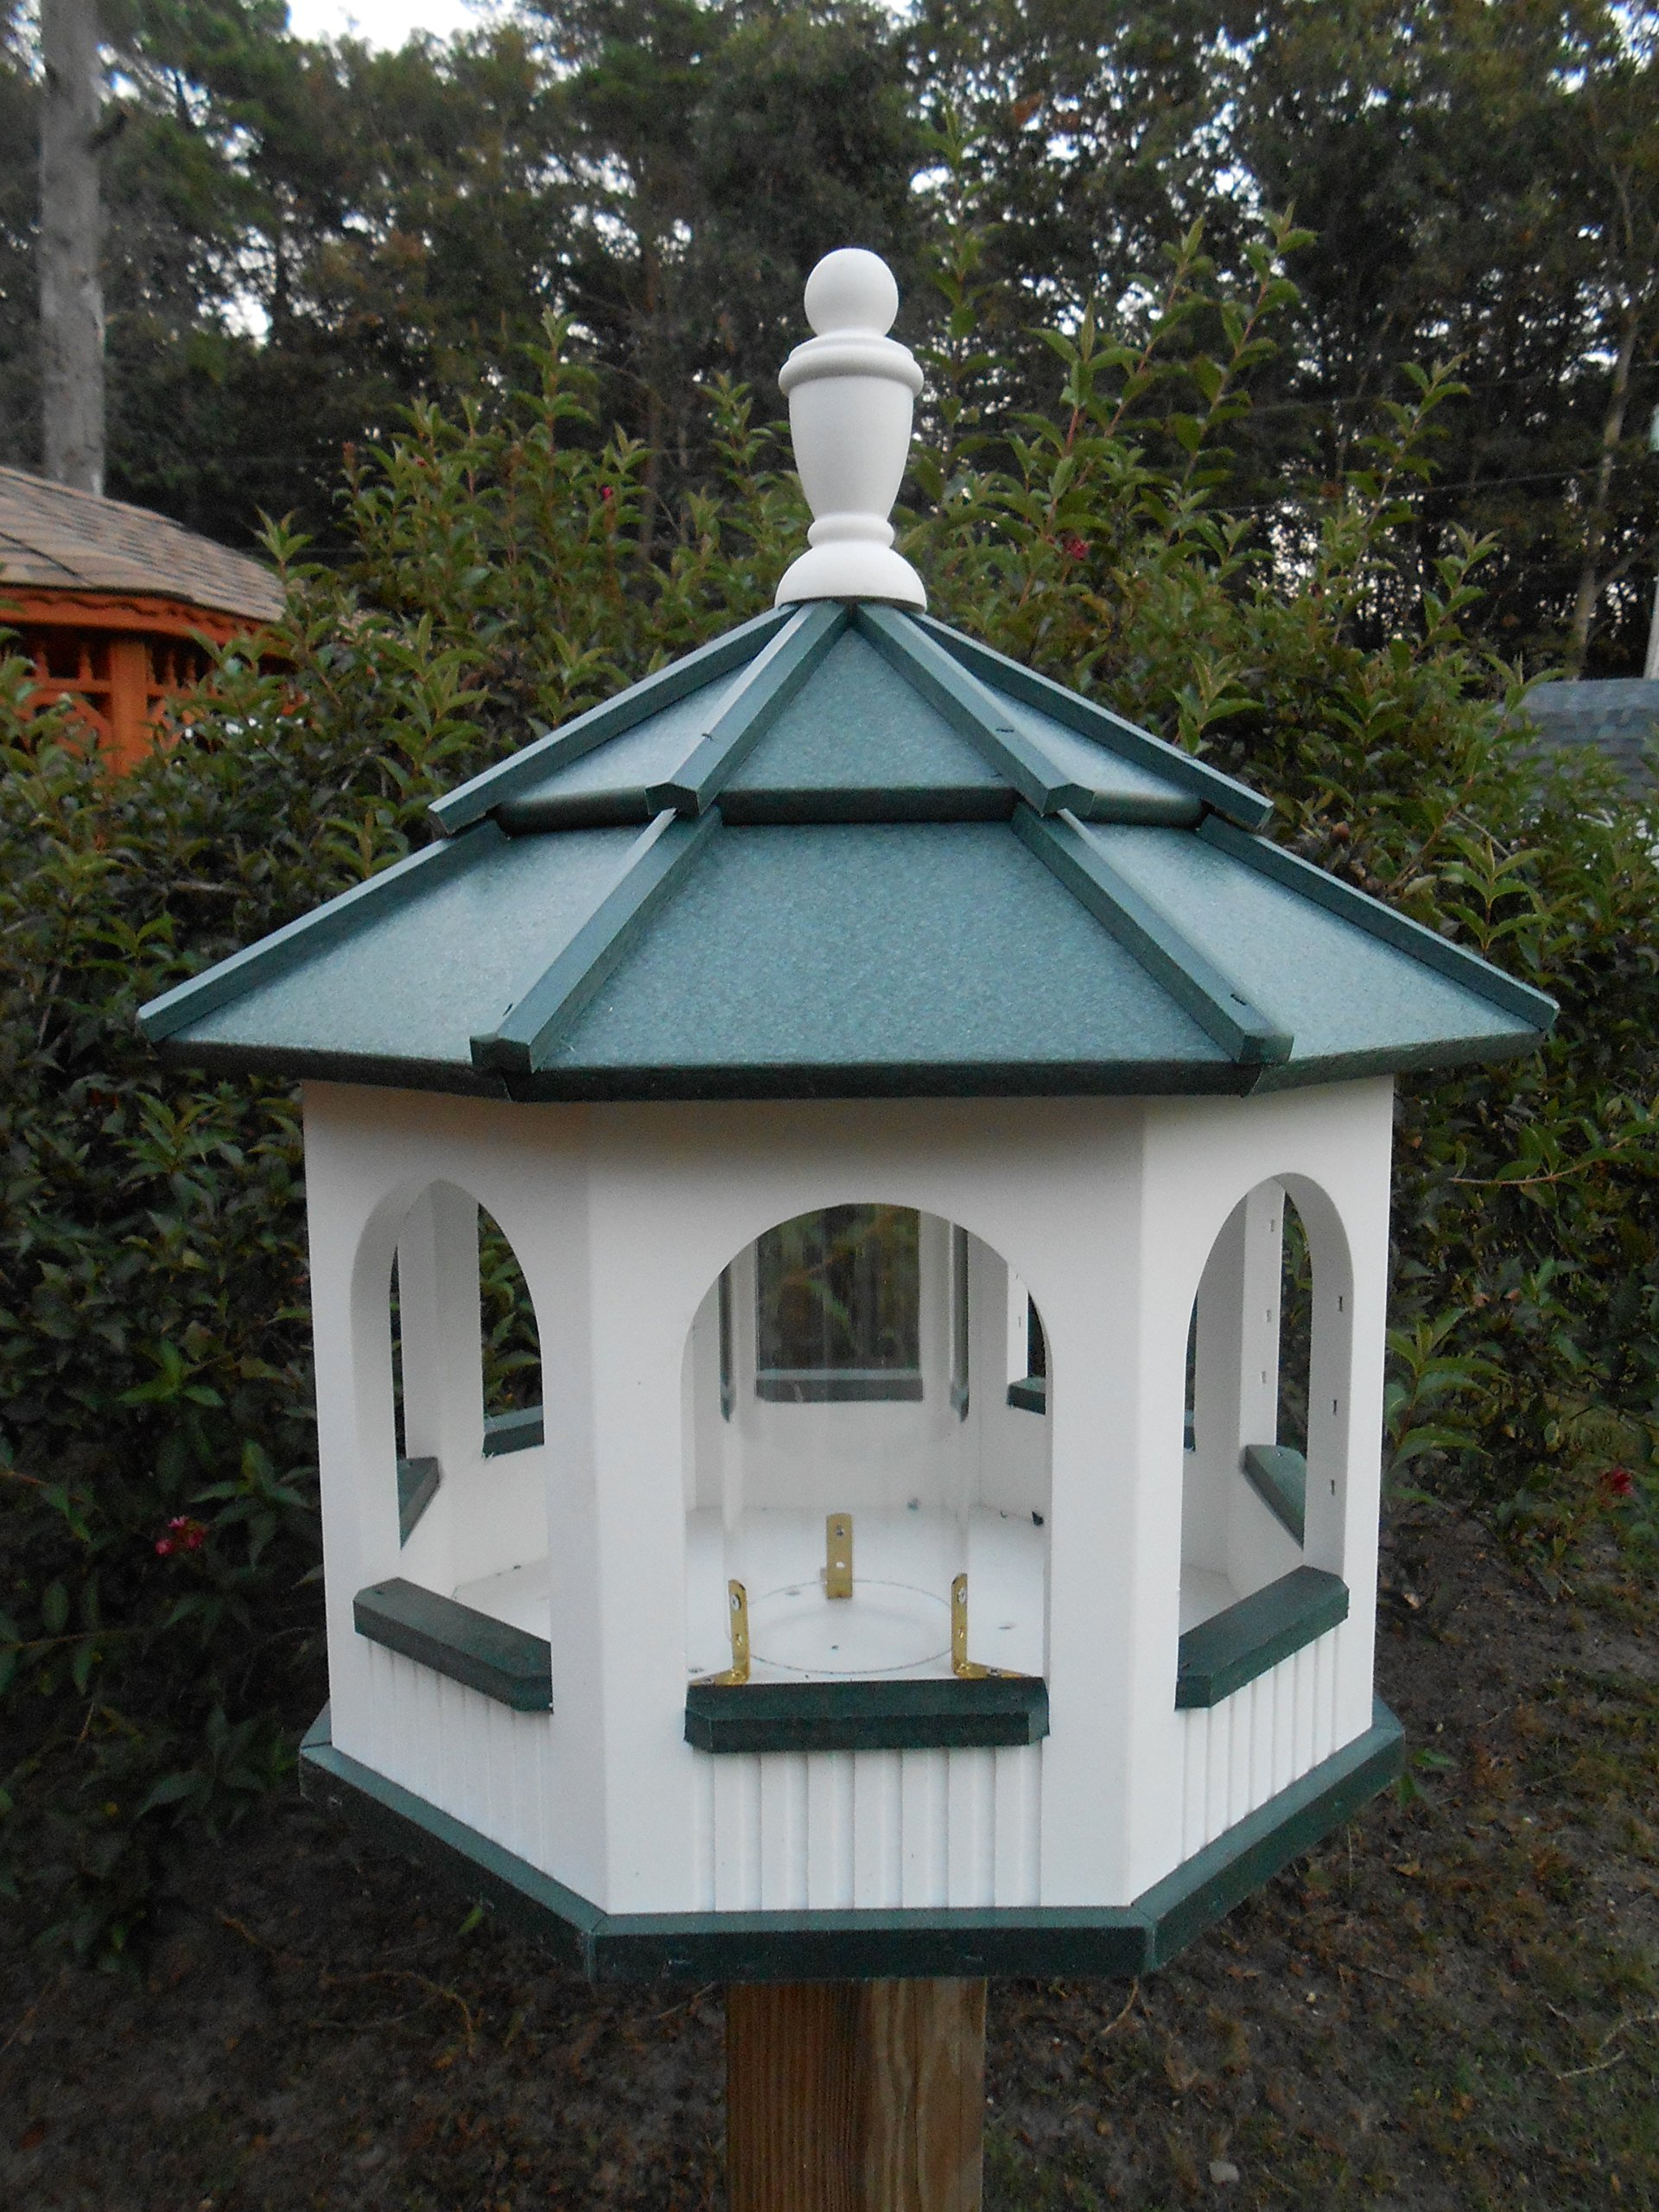 Large Gazebo Vinyl Bird Feeder Amish Homemade Handmade Handcrafted White & Green by Amish Crafted